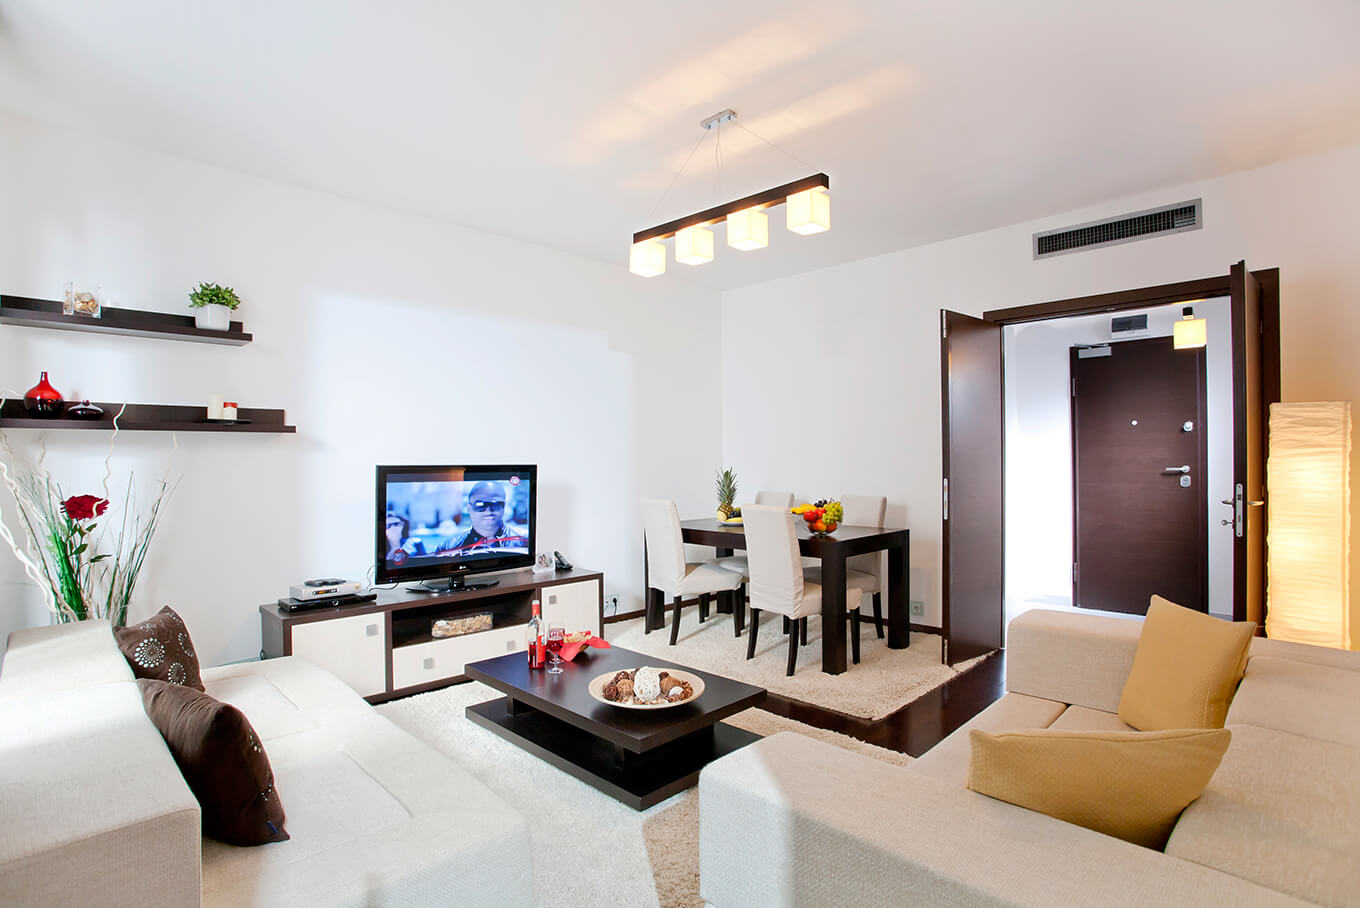 Rent A Center Living Room Set Bucharest 2 Rooms Apartment For Rent Short Term